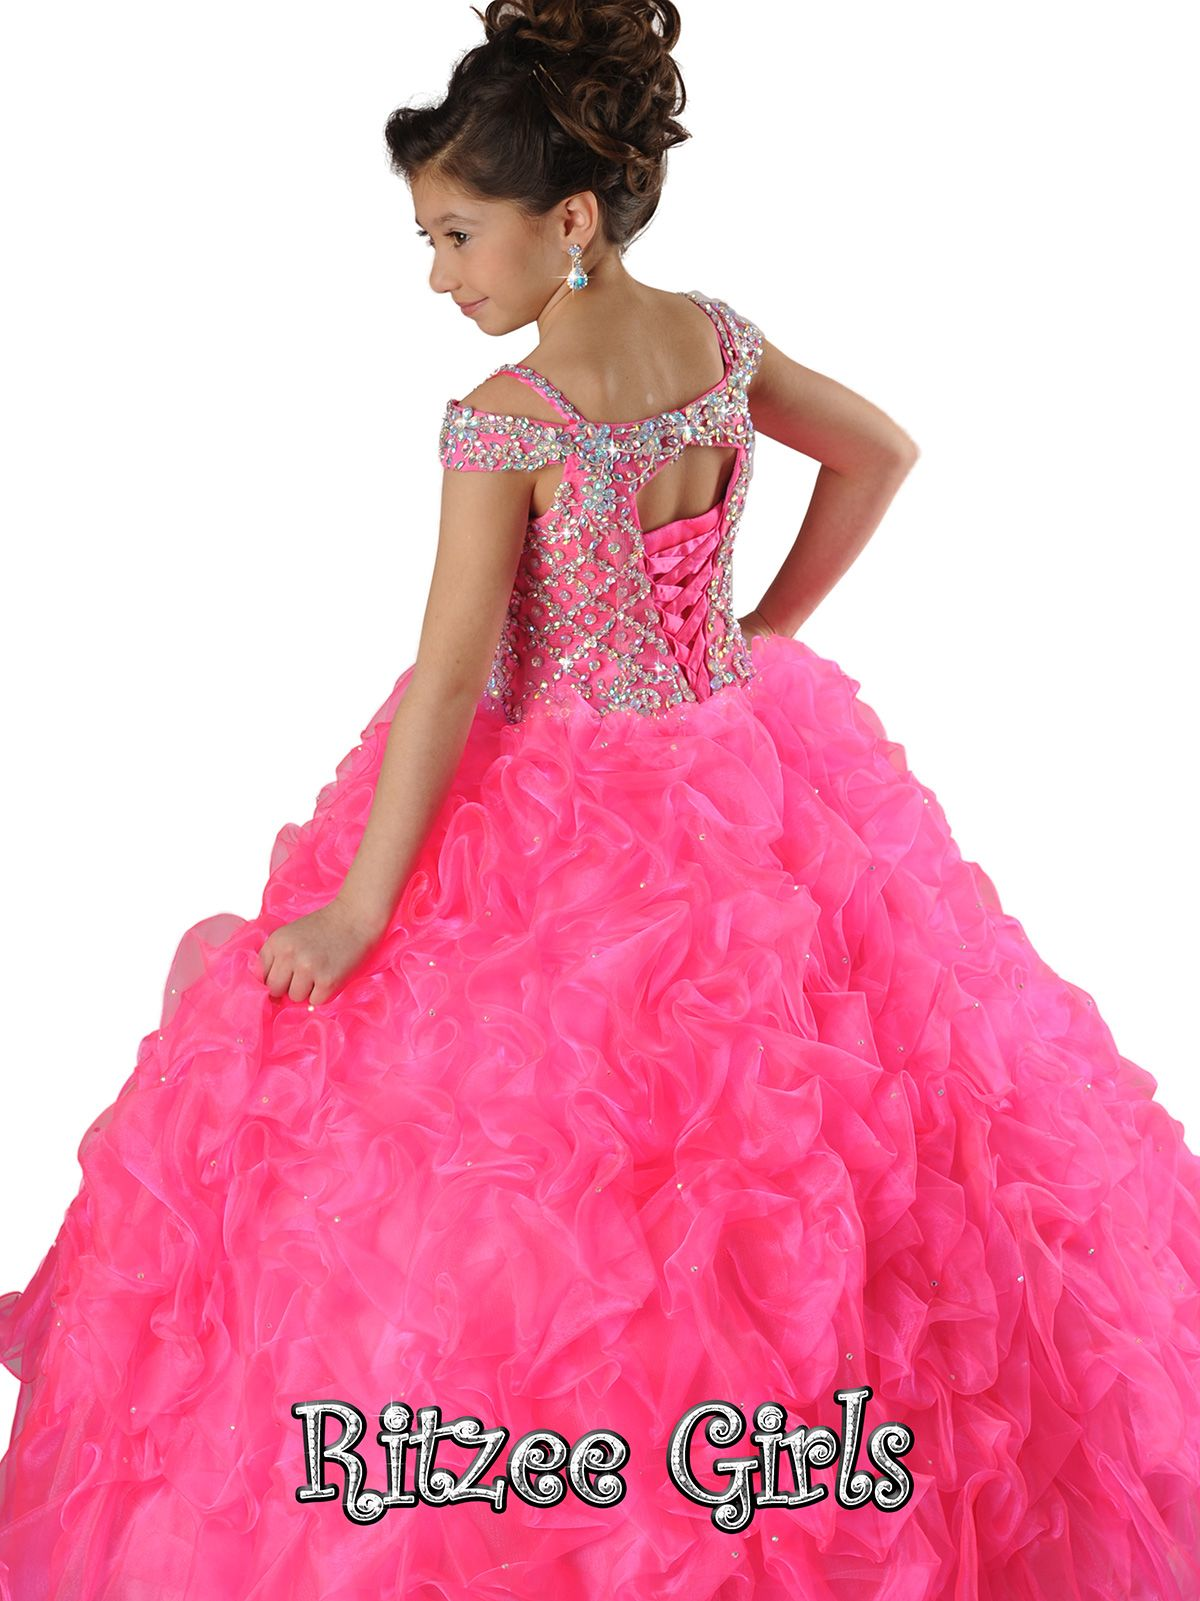 Crystal Sweetheart Bodice Ritzee Girls Pageant Ball Gown  6566|PageantDesigns.com